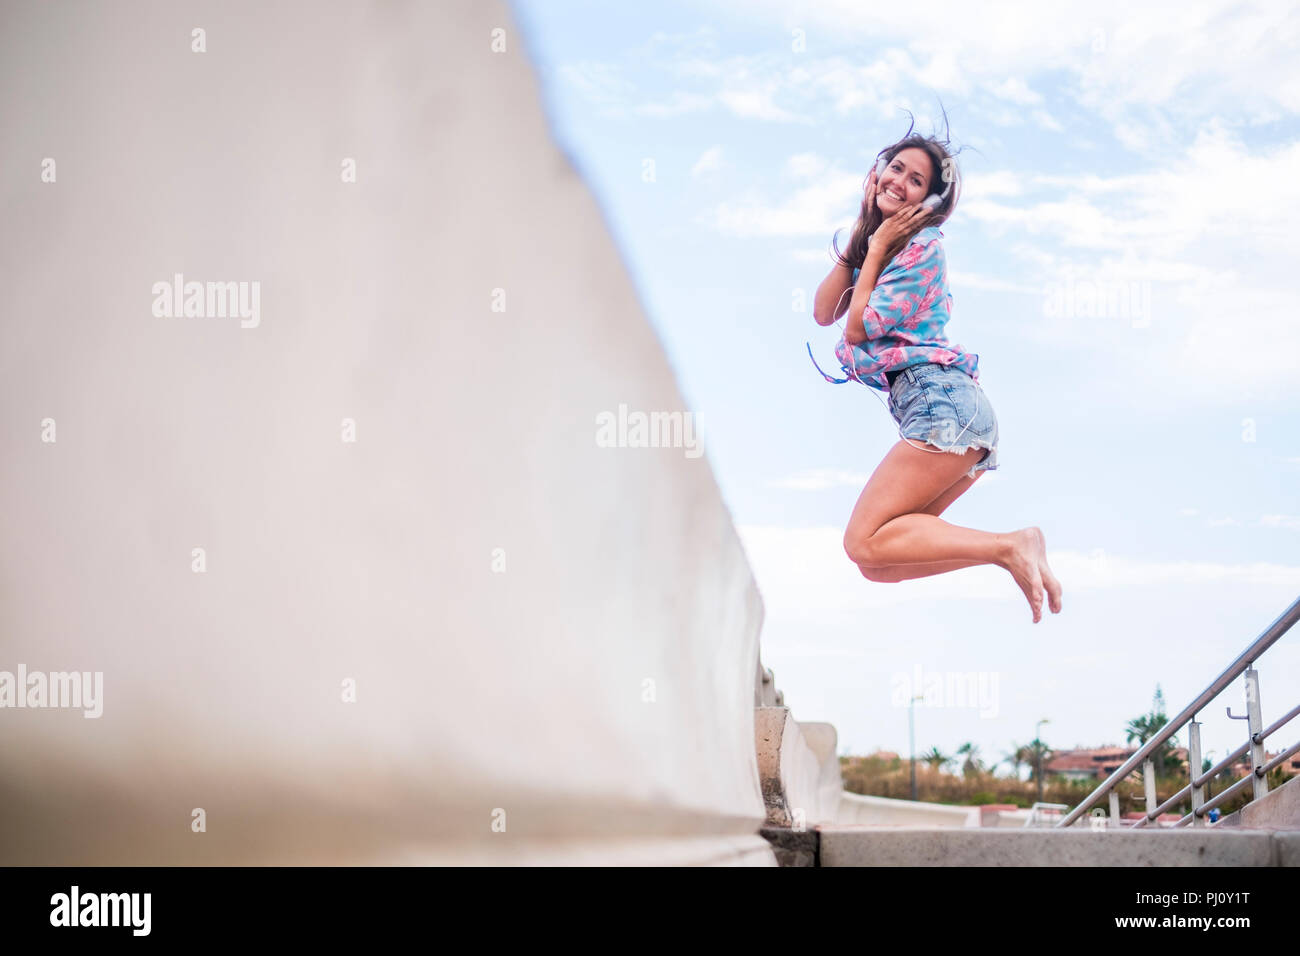 Happiness concept with young beautiful girl jumping with joyful against a white sky blue background. sea side place. Cheerful caucasian woman smile an - Stock Image